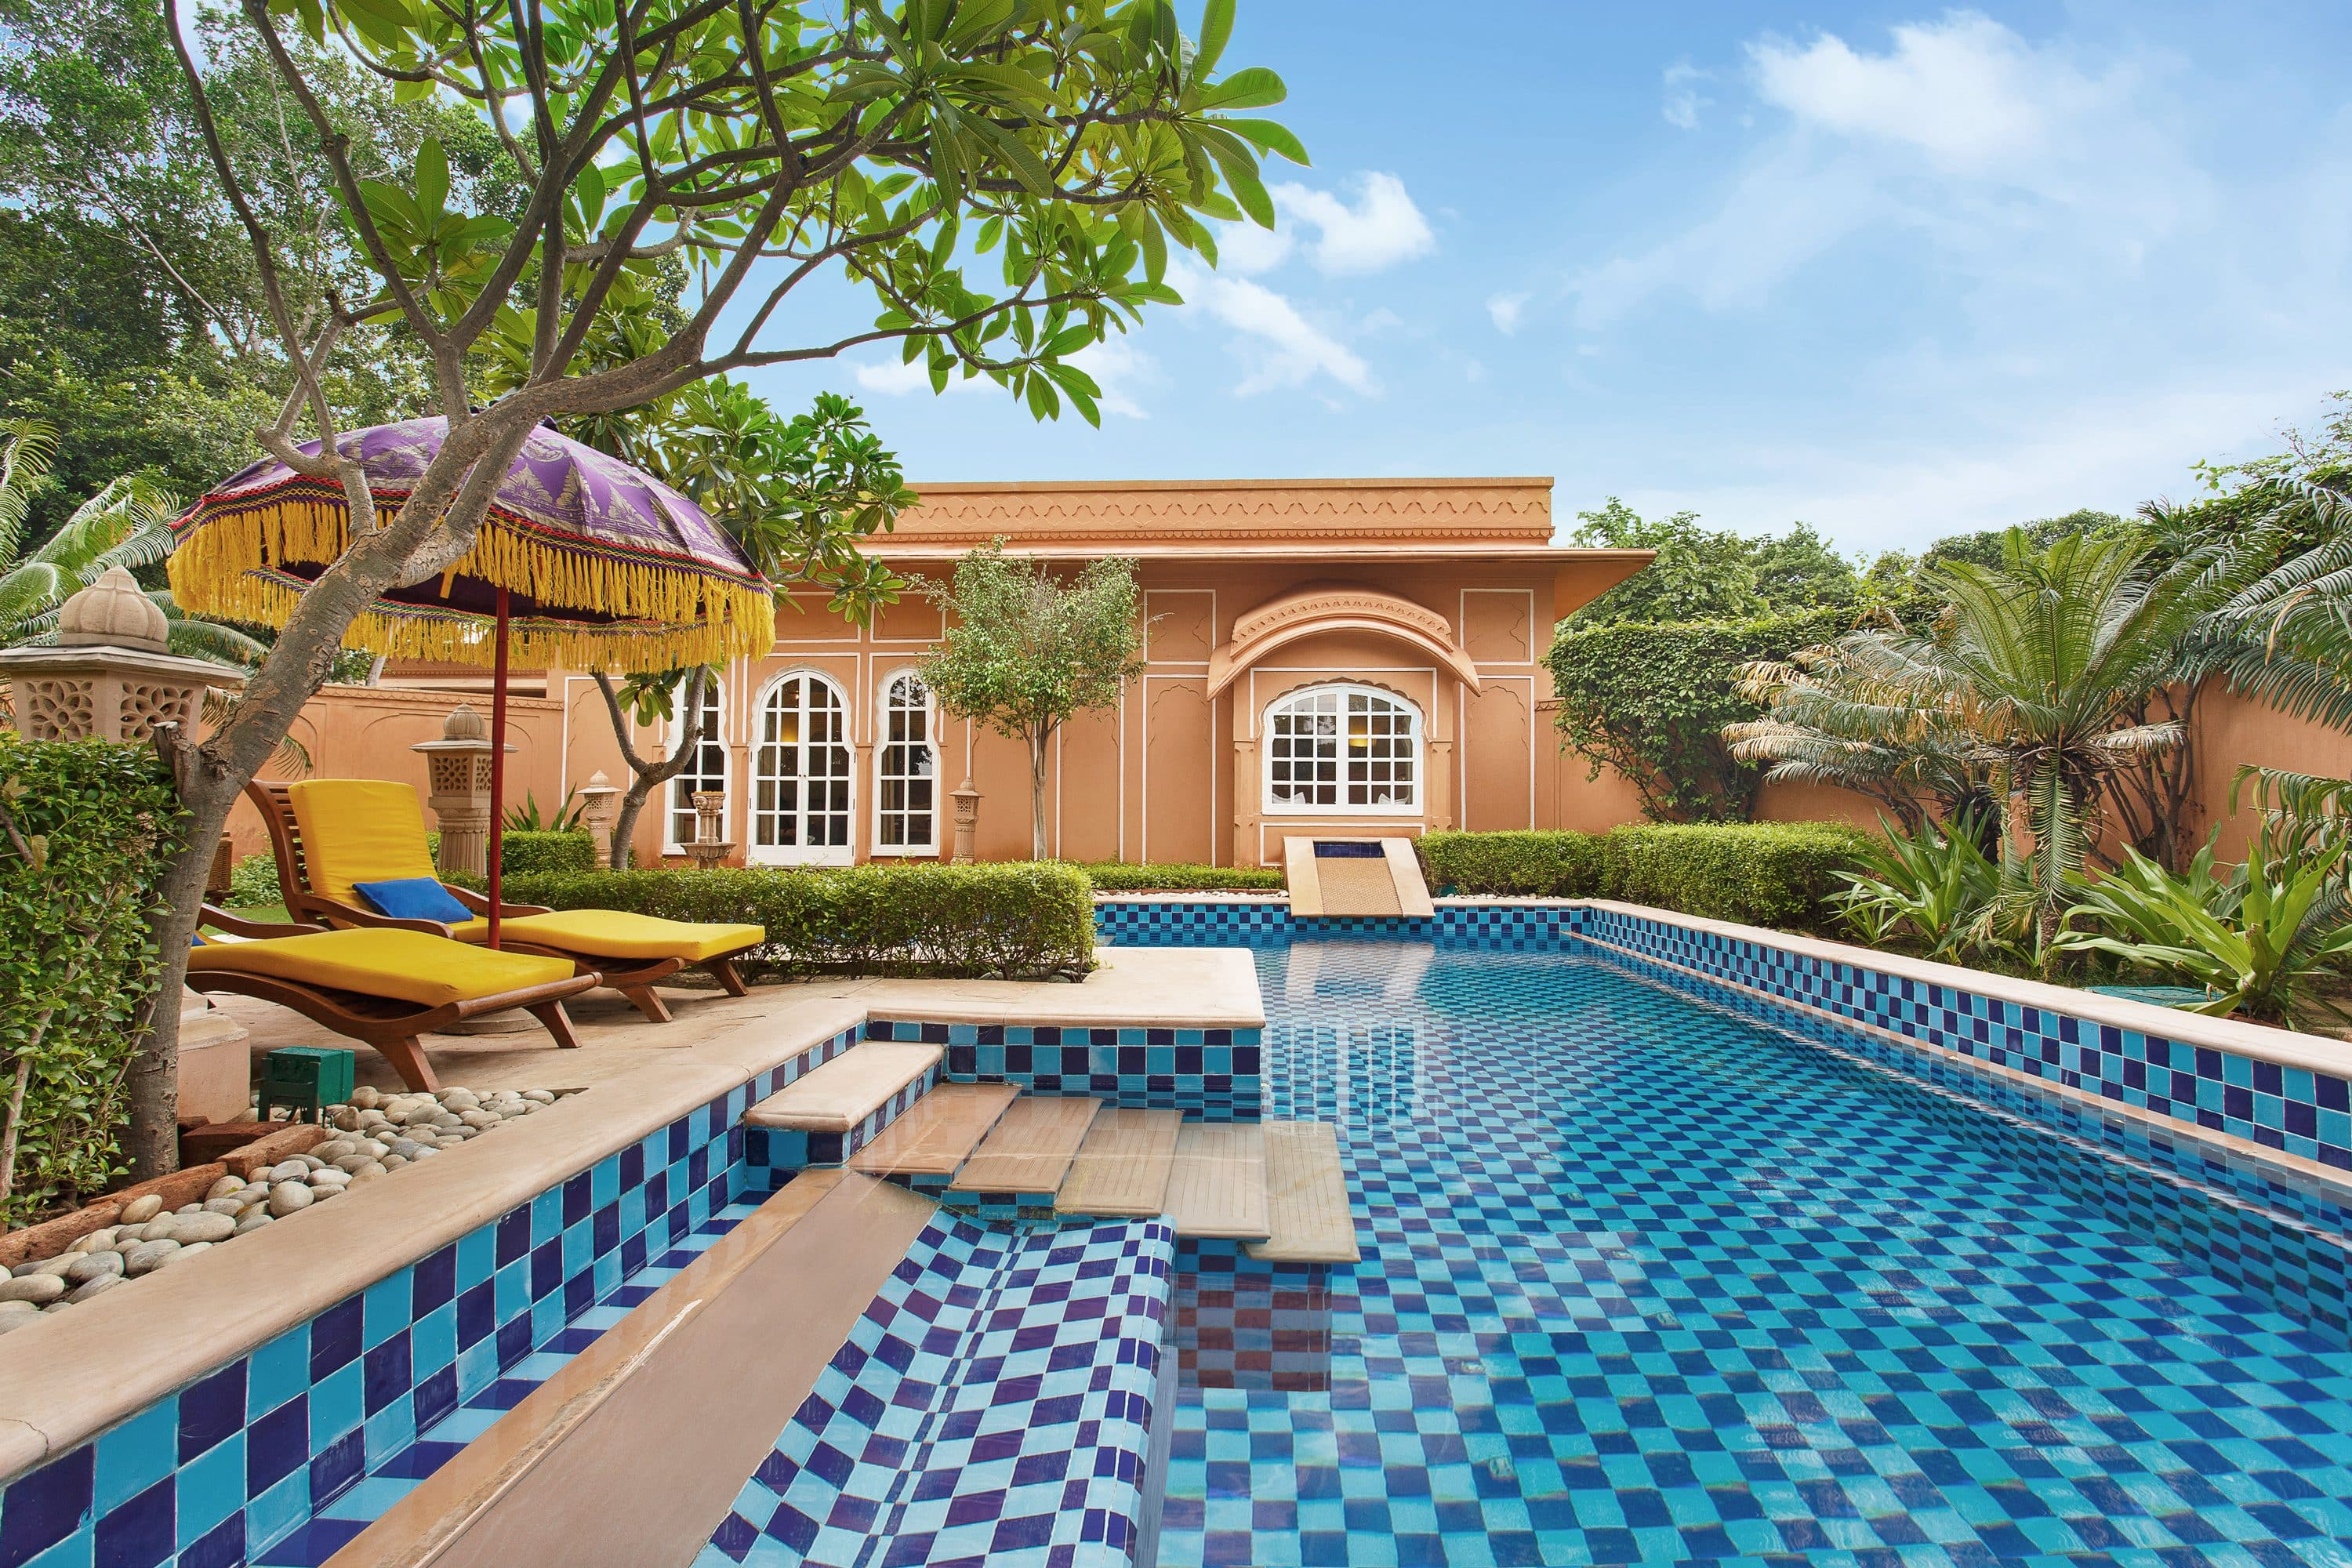 Pool and villa at The Oberoi Jaipur